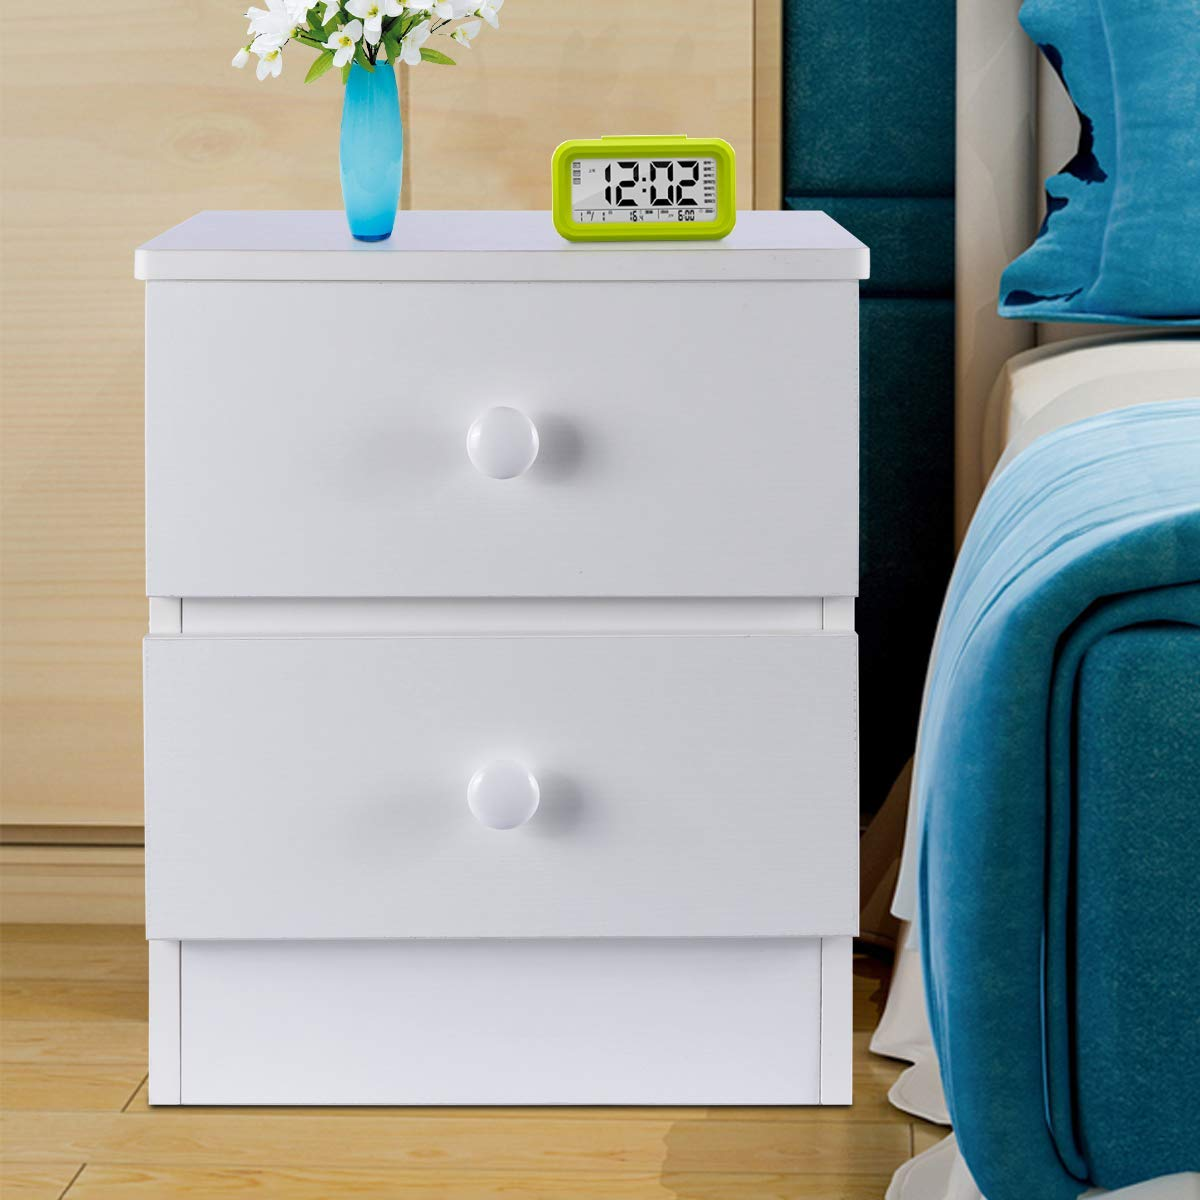 DOSLEEPS Bedside Table with 2 Drawers, Wood End Table/Coffee Table, Simple NightStand, Storage Unit, White